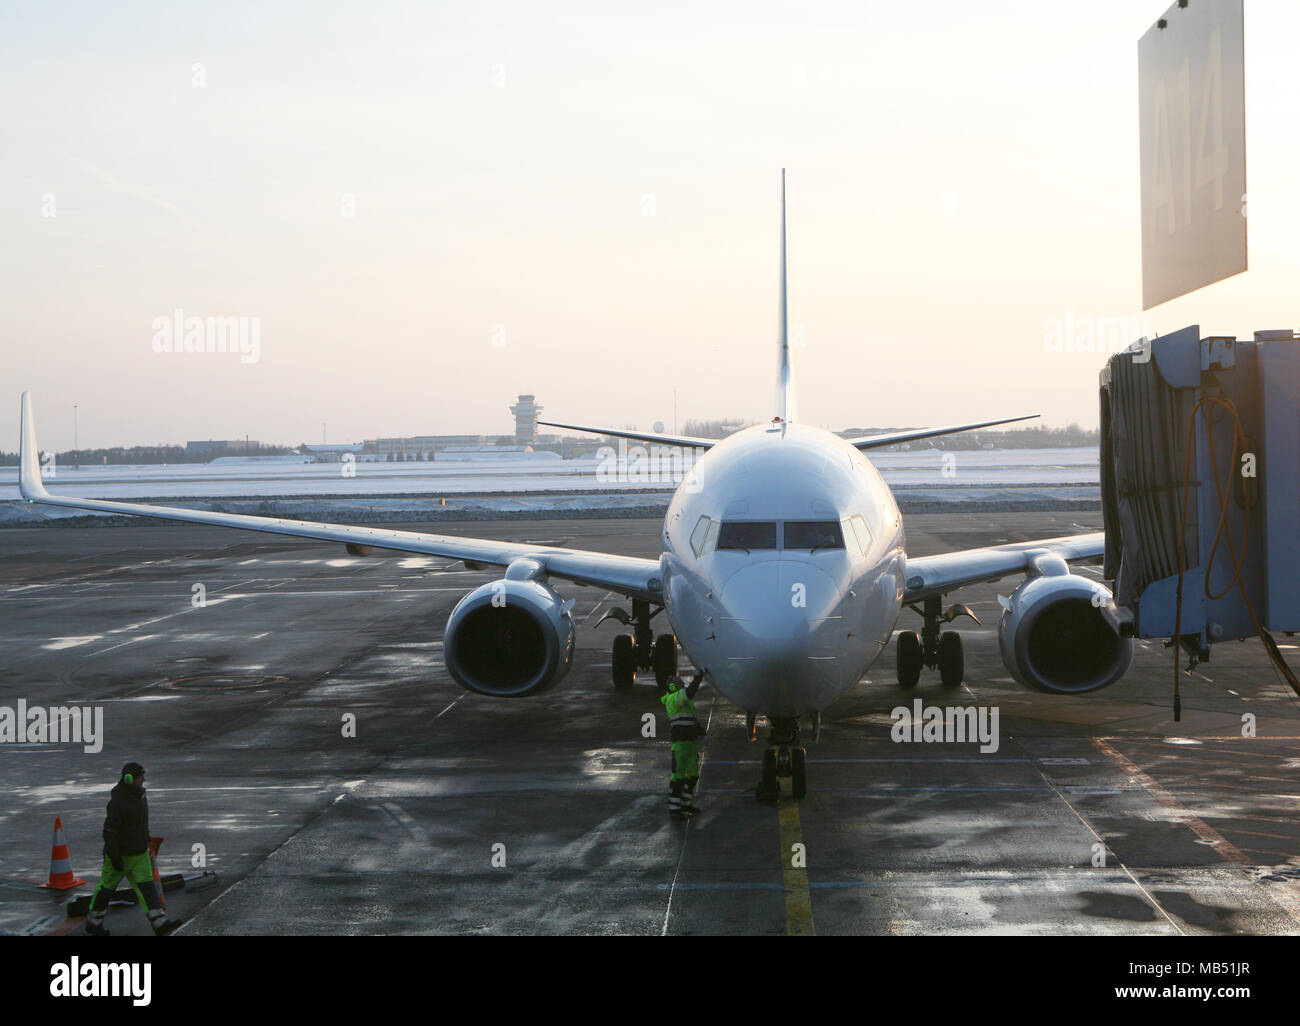 Aircraft at the airport gate, Copenhagen, Denmark - Stock Image